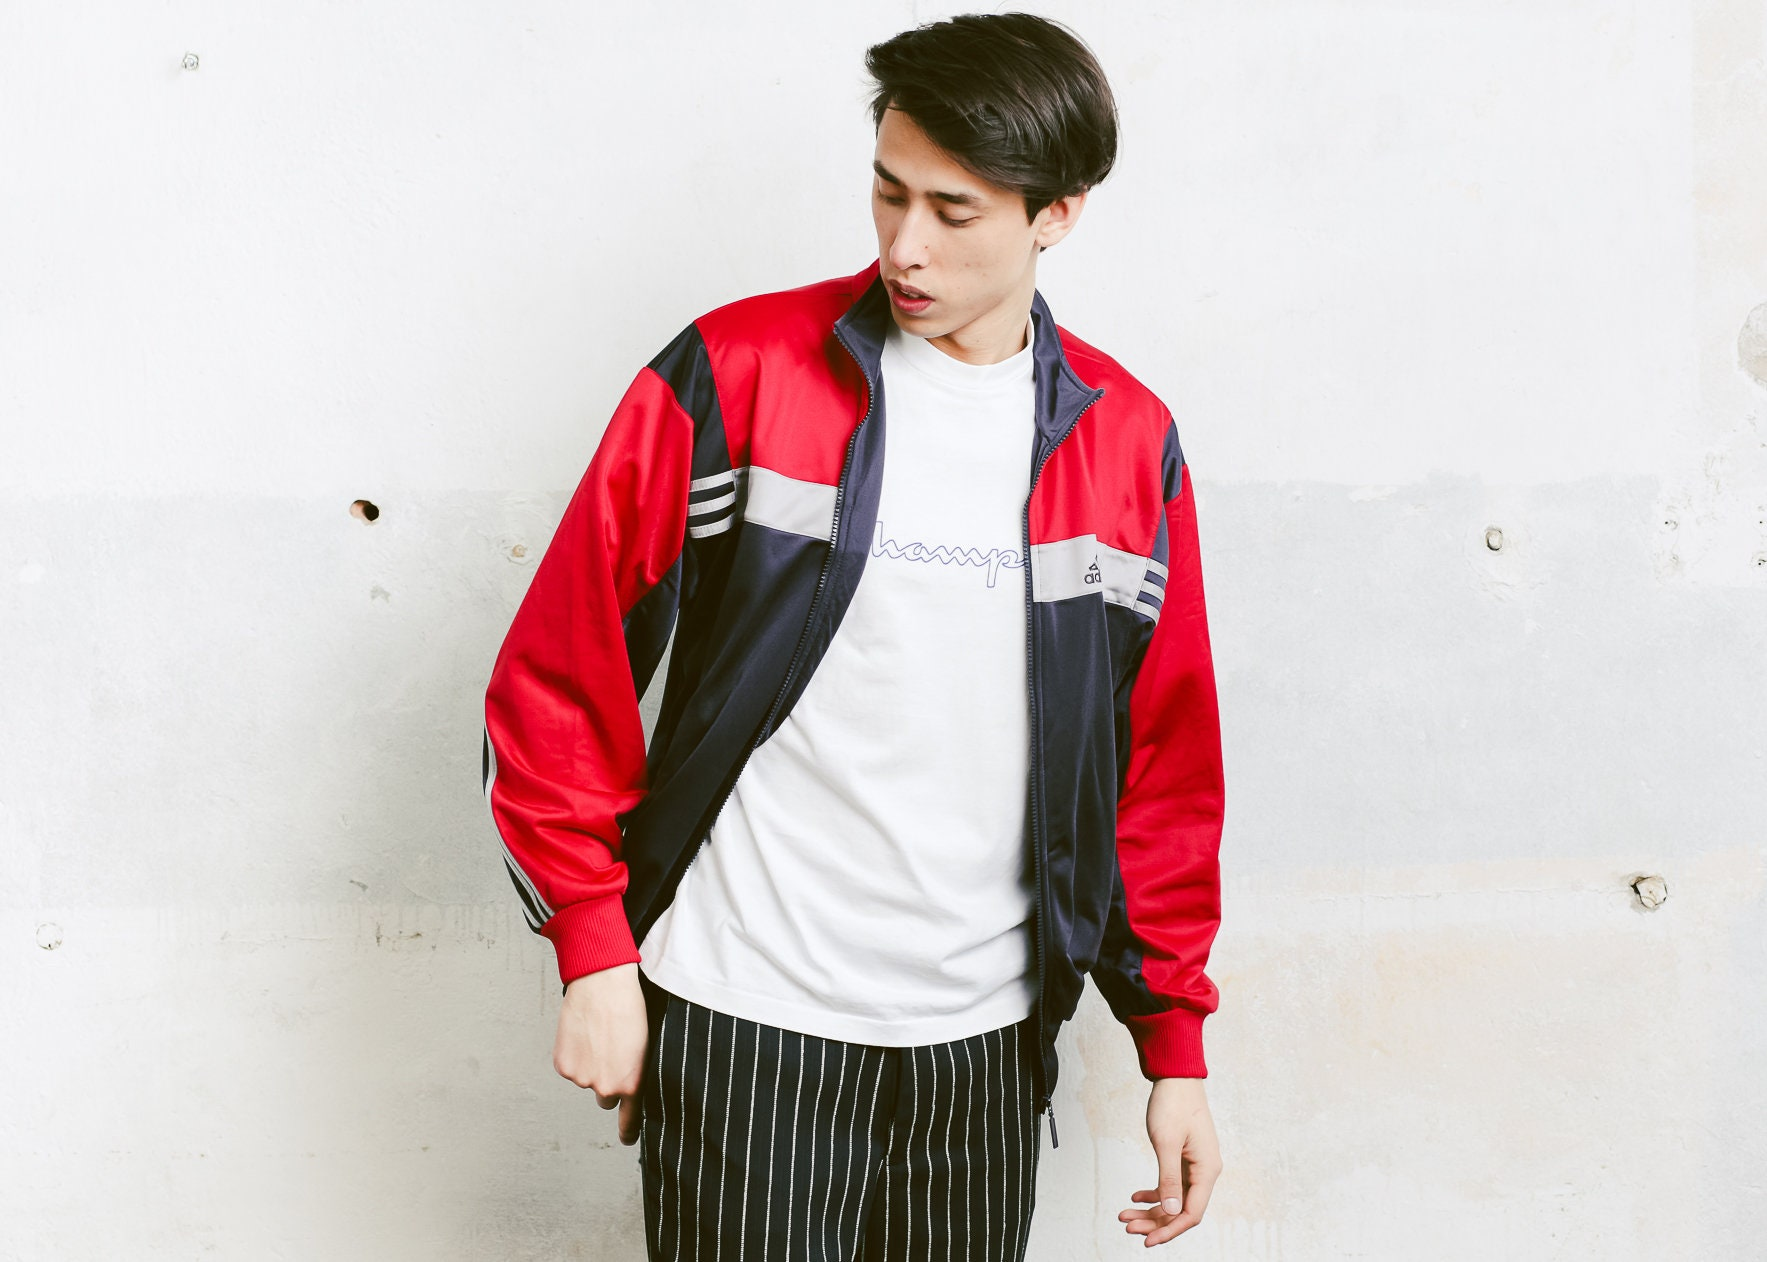 6751ddd83ed Adidas Track Jacket . 90s Vintage Adidas Red Black Jacket Zip Up Sports  Jacket Unisex Tracksuit Top Streetwear Rave Jacket . size Small S